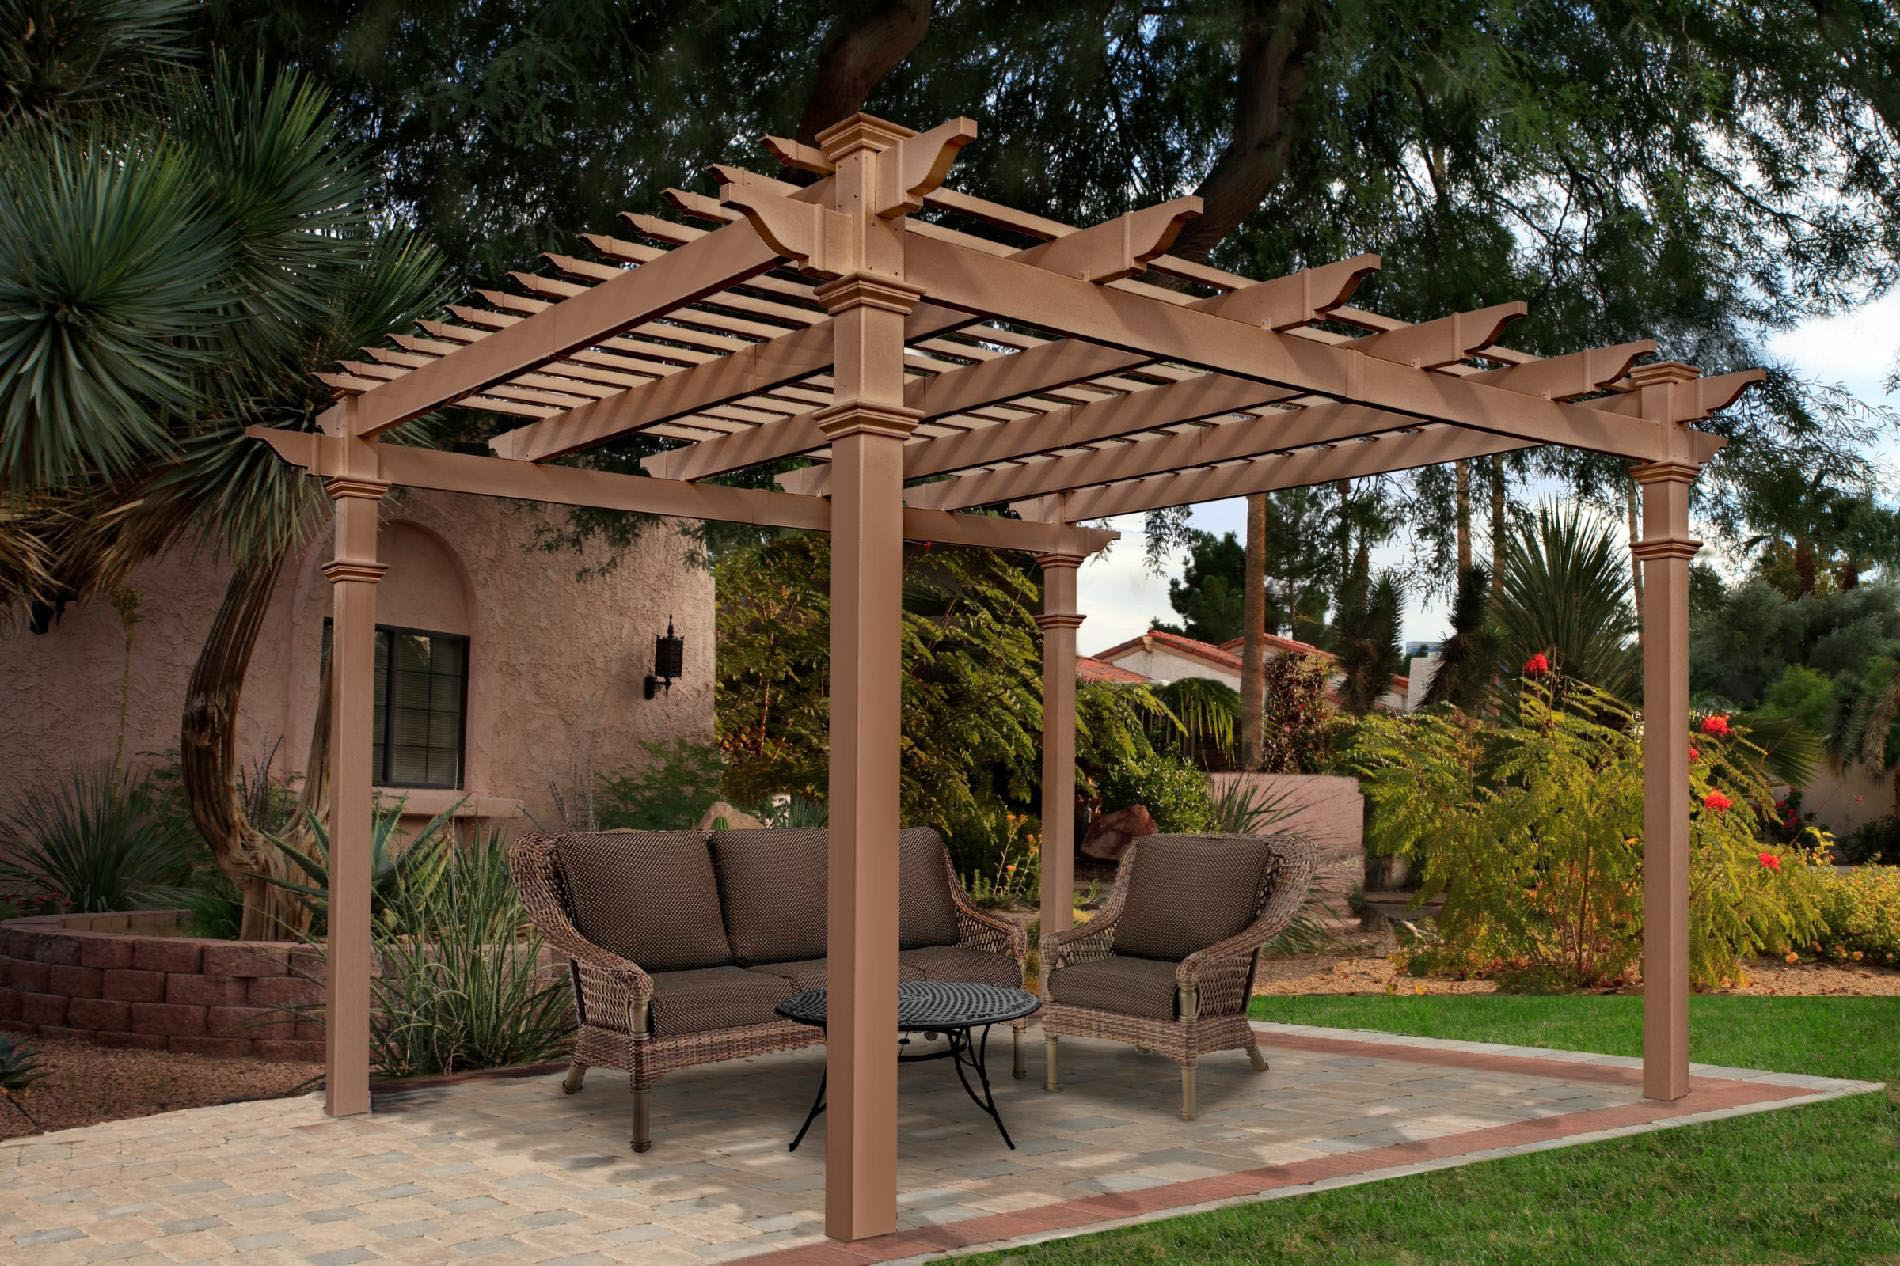 Cedar Gazebo Kits Costco | Pergola Design Ideas